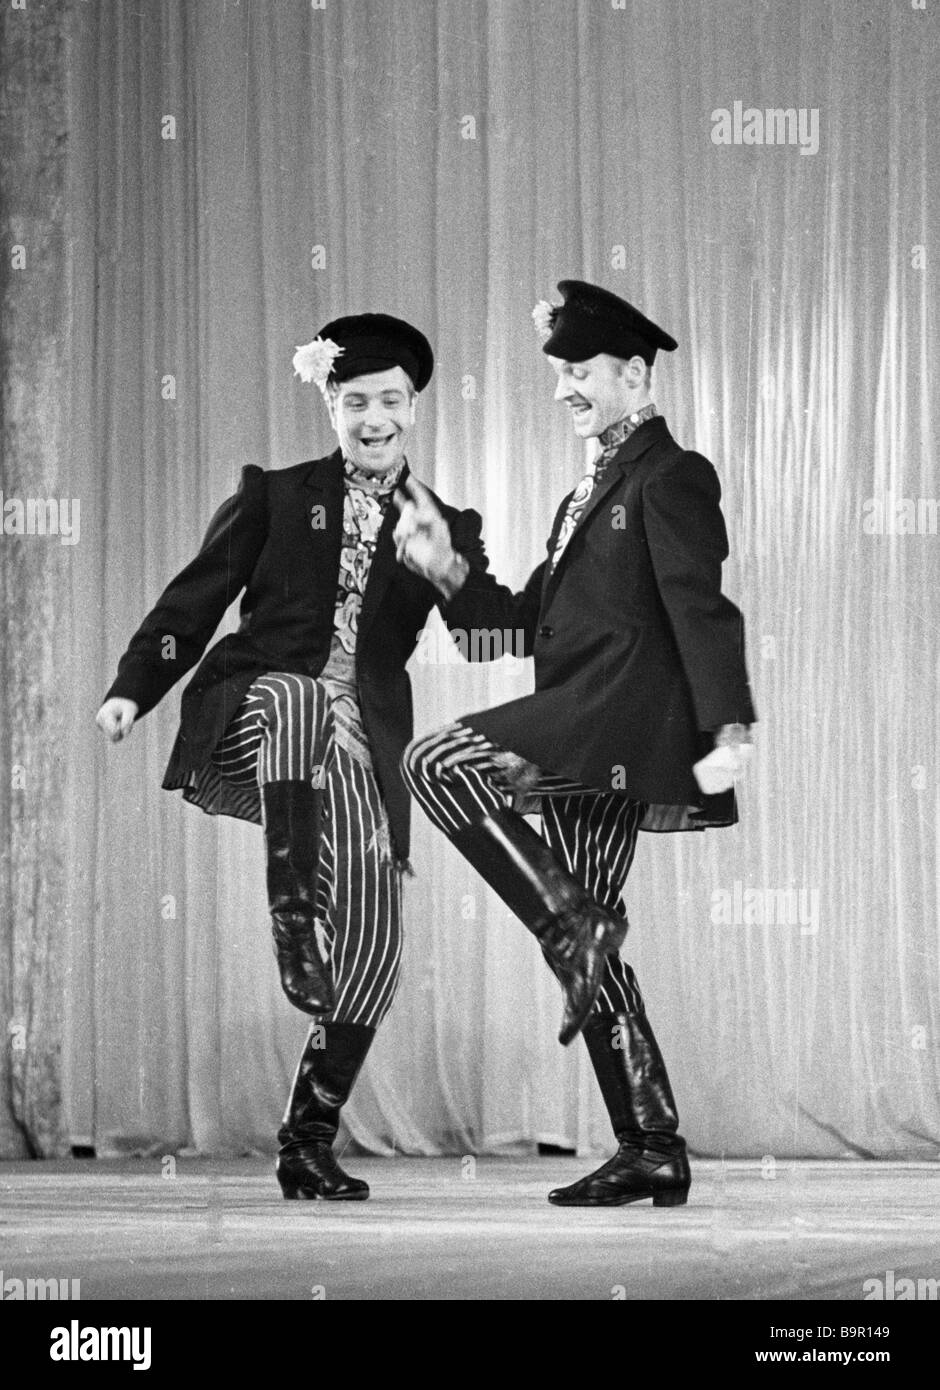 Variety actors performing the Dandy dance - Stock Image